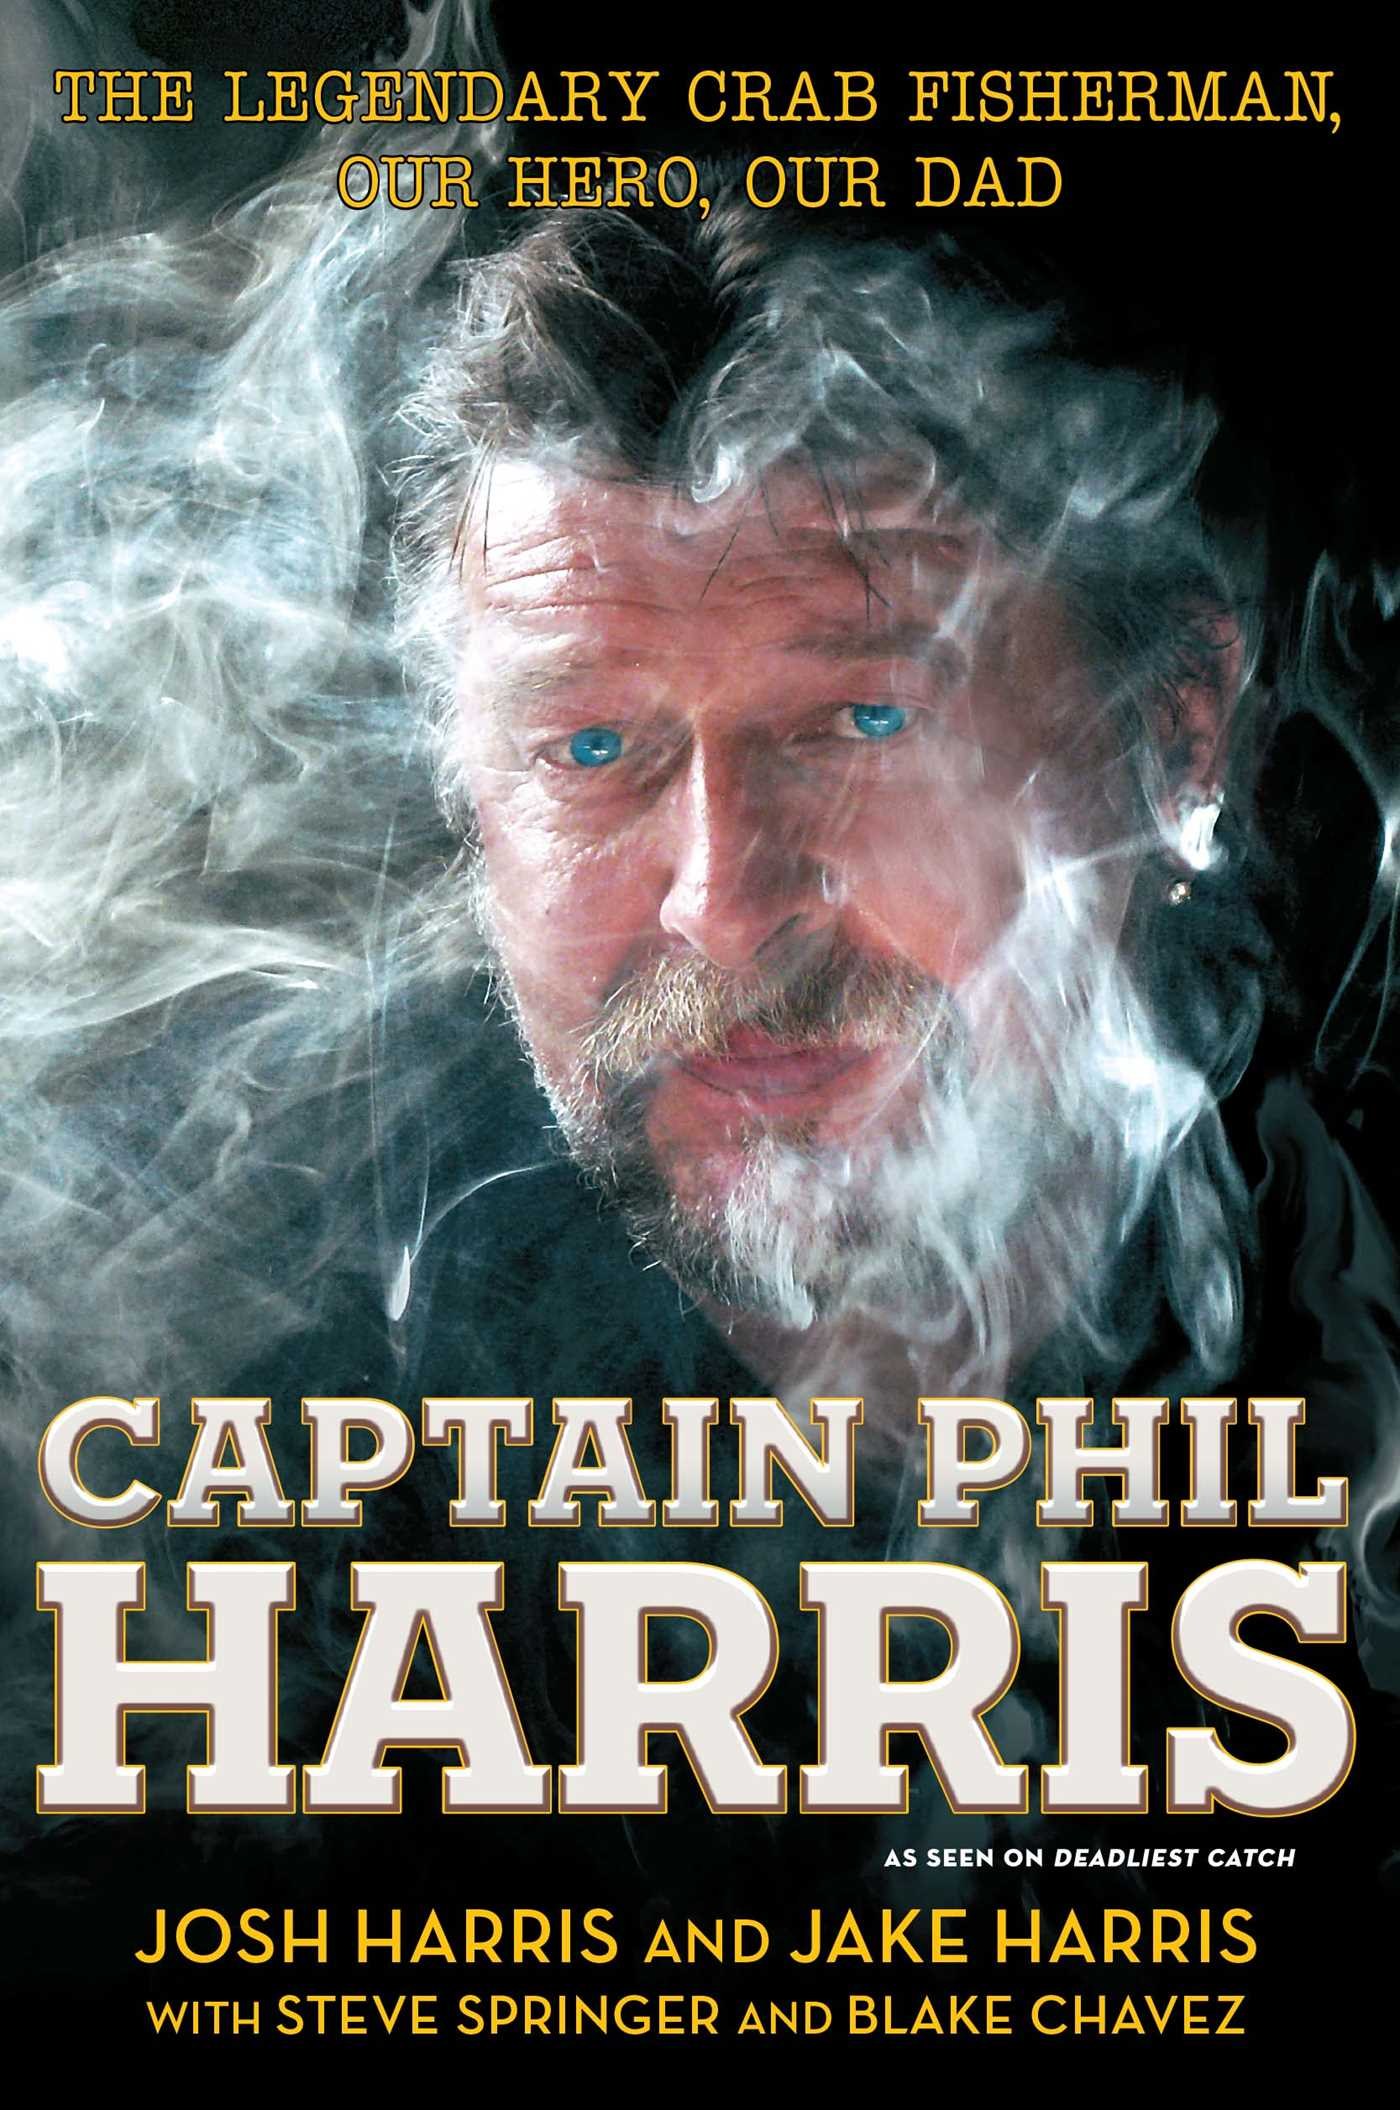 Captain-phil-harris-9781451666069_hr